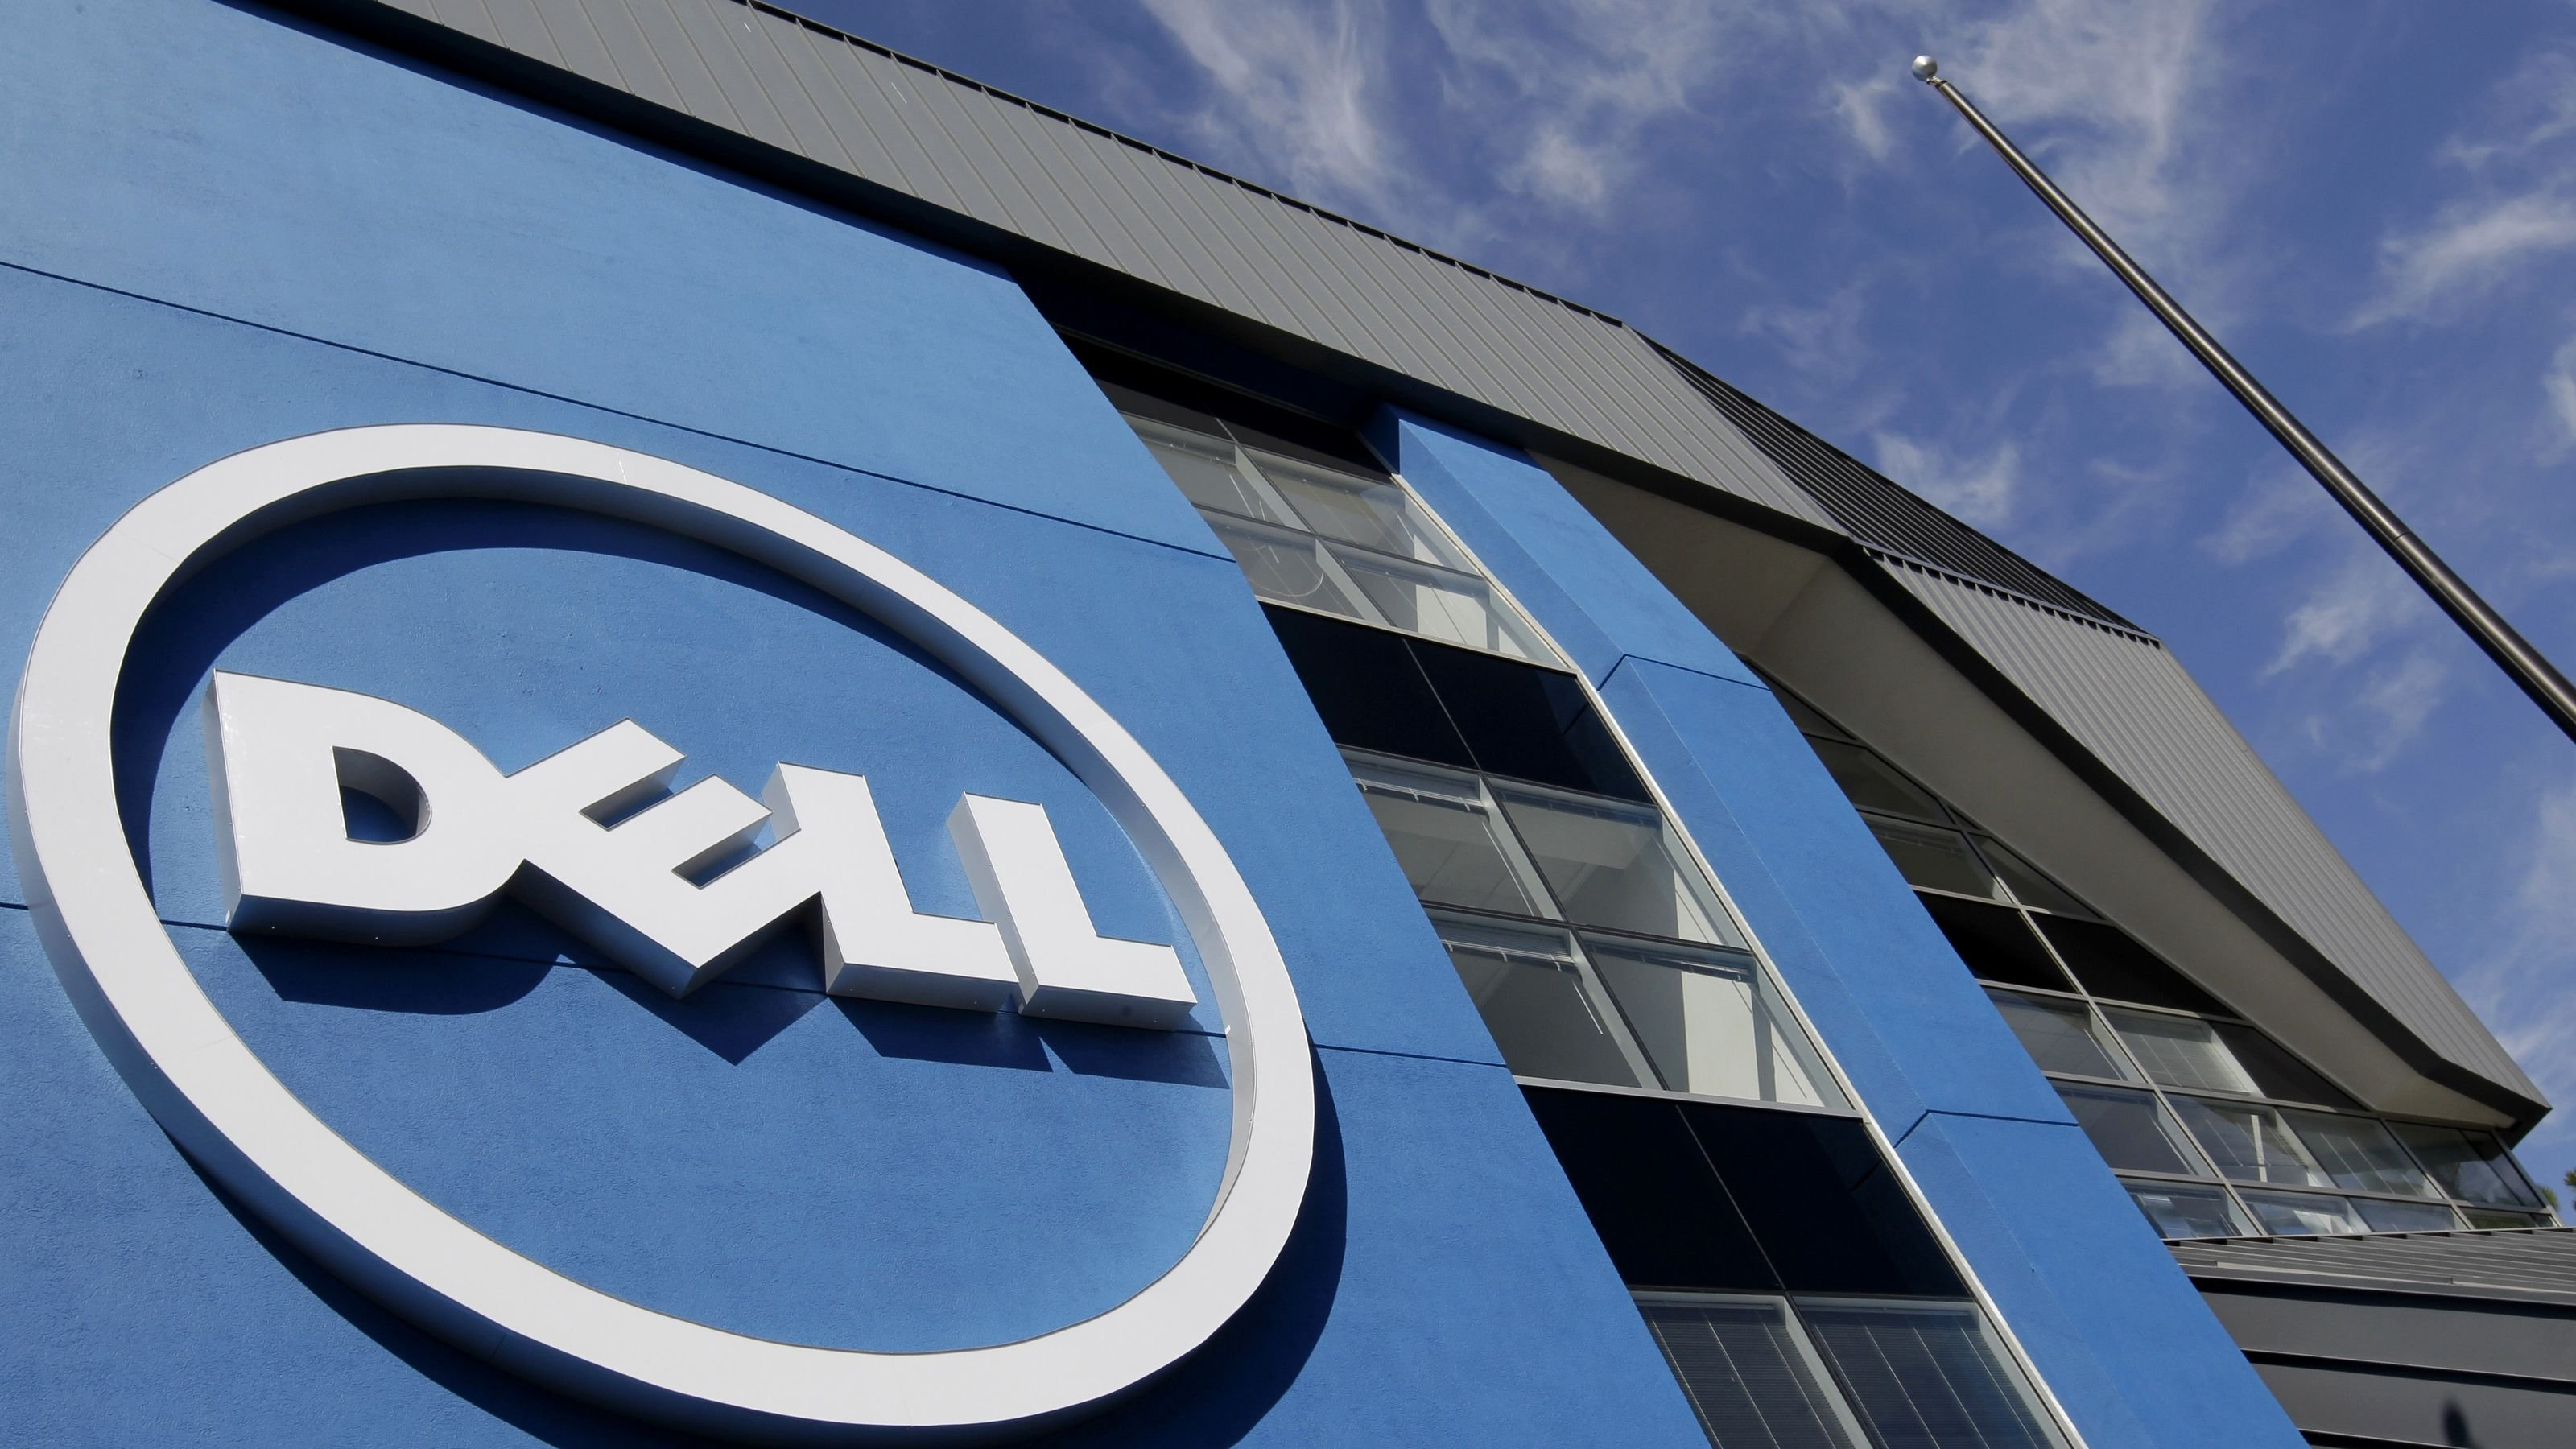 Dell Wallpapers Hd